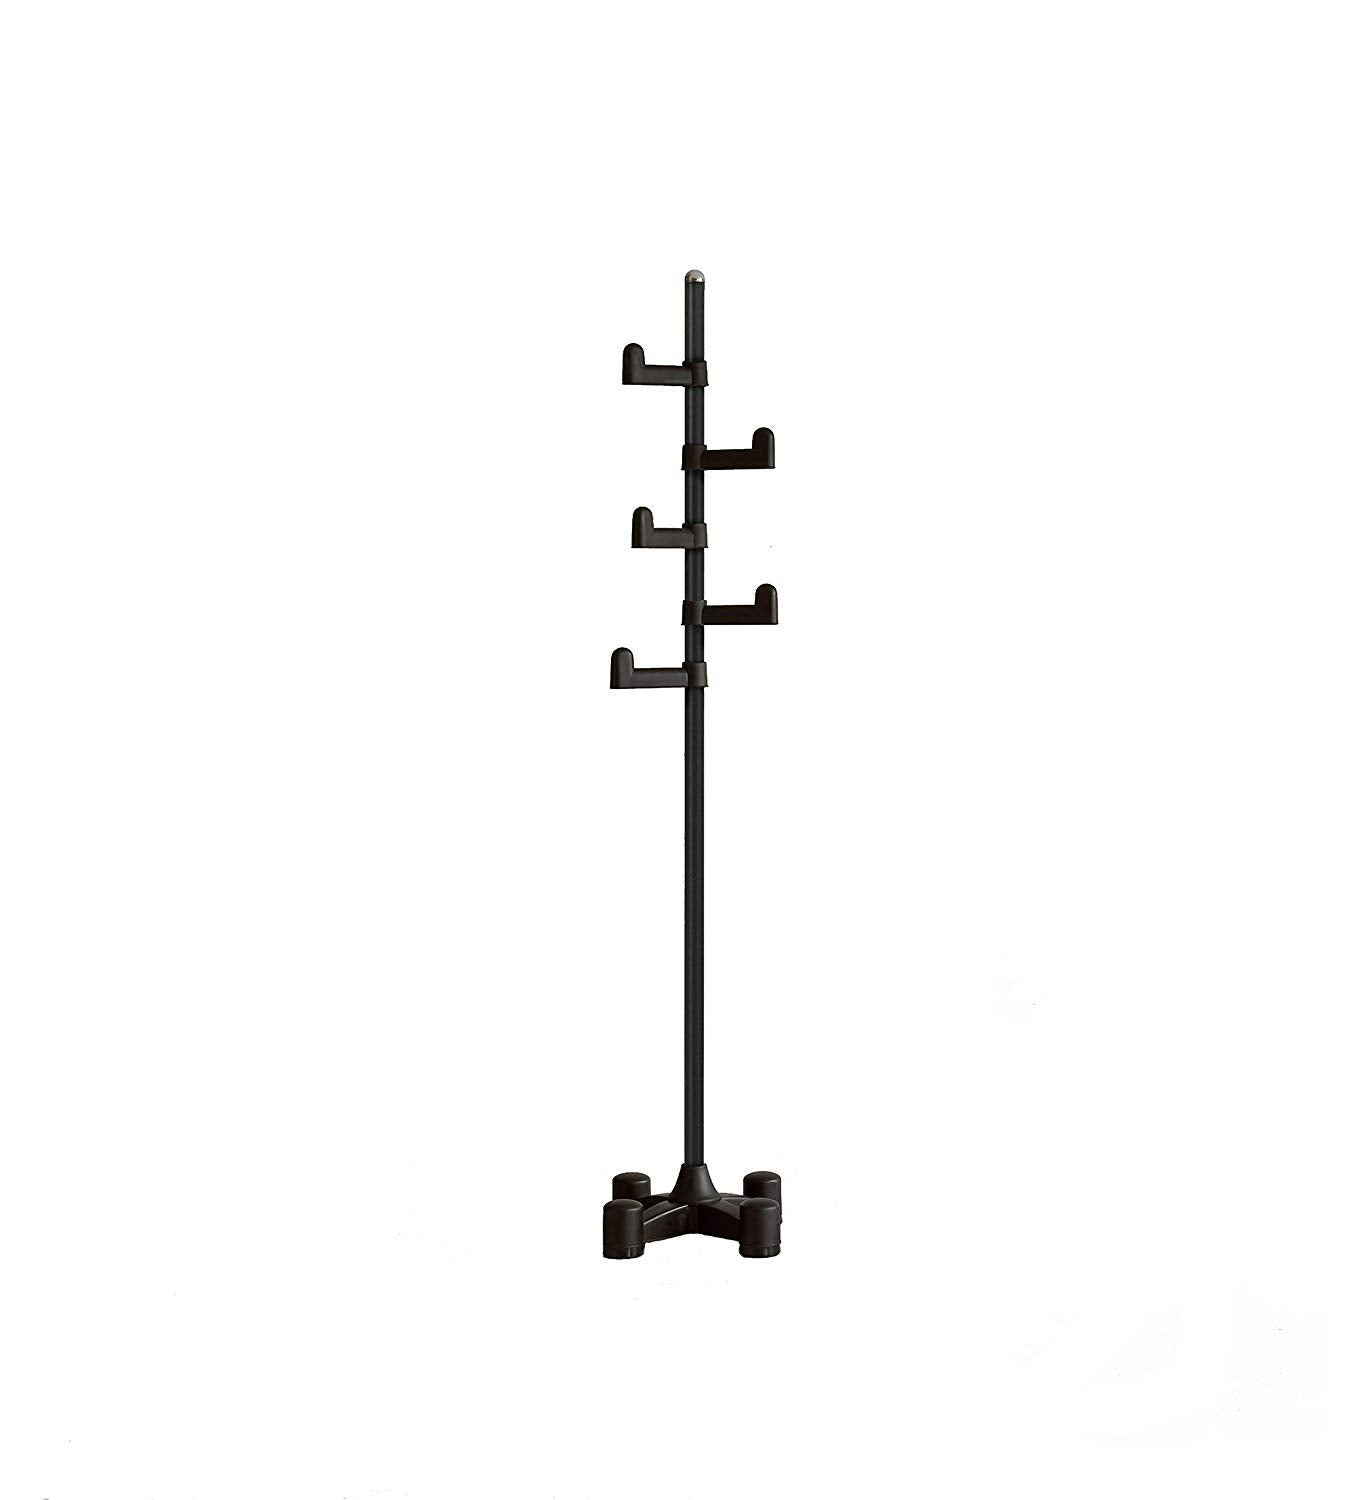 LivingStar Premium Coat Rack & Stand Hanger: modern design, easy to assemble, vertically adjustable hooks, durable body and base. Ample rooms to put heavy coats & clothes.Easily move around. Black